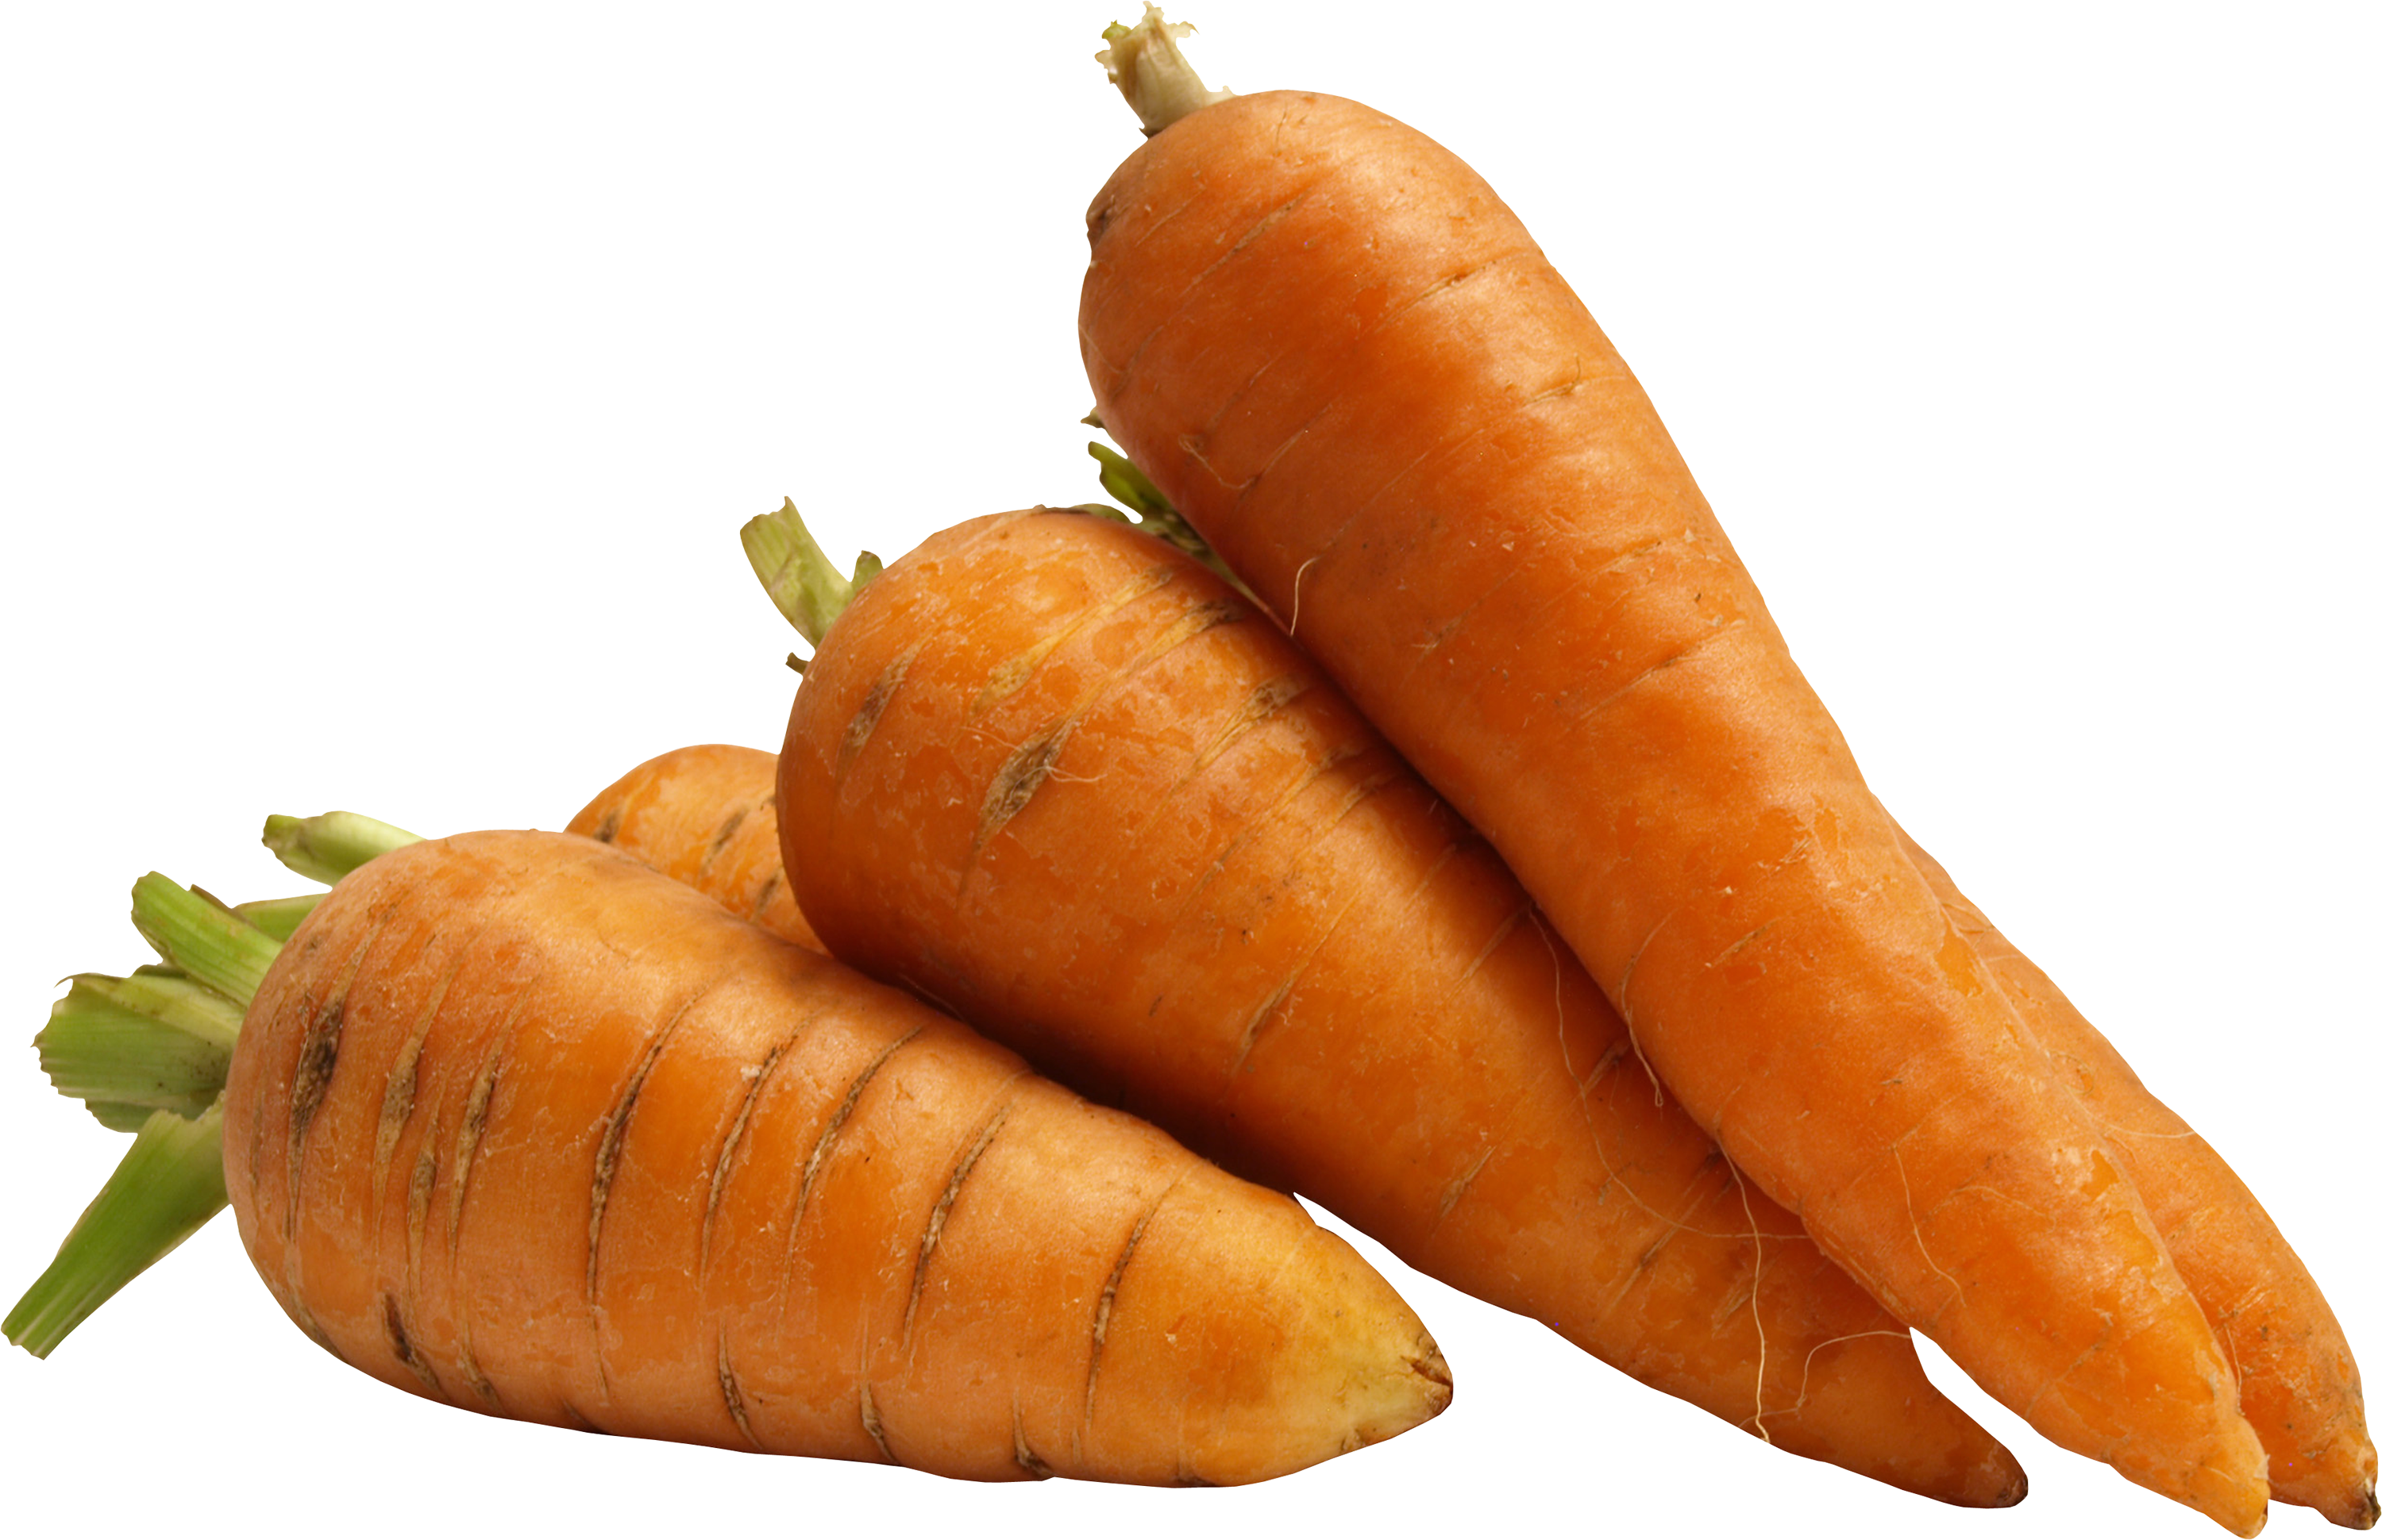 Foods clipart carrot. Png image free download